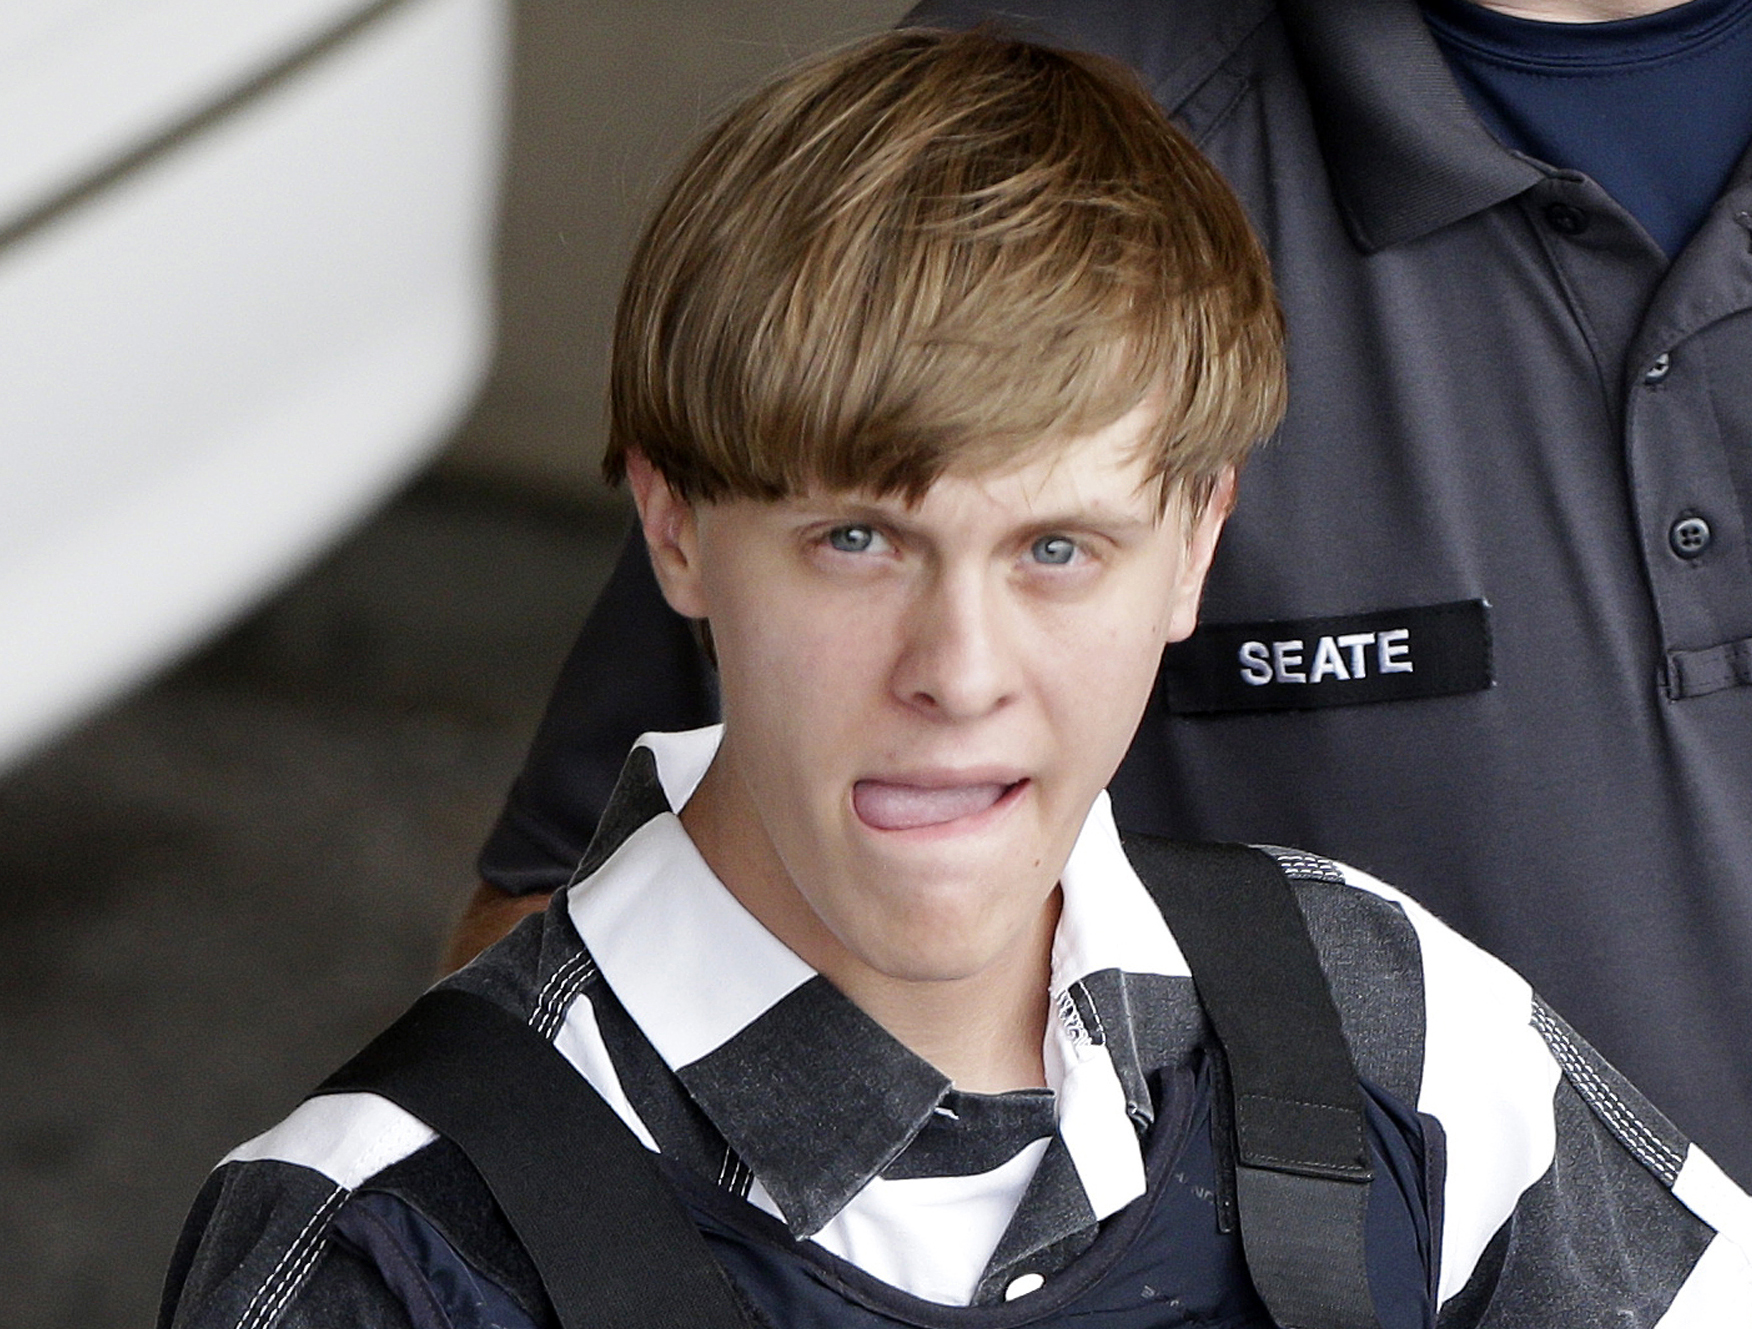 We Must Call Him A Terrorist Dylann Roof Fox News And